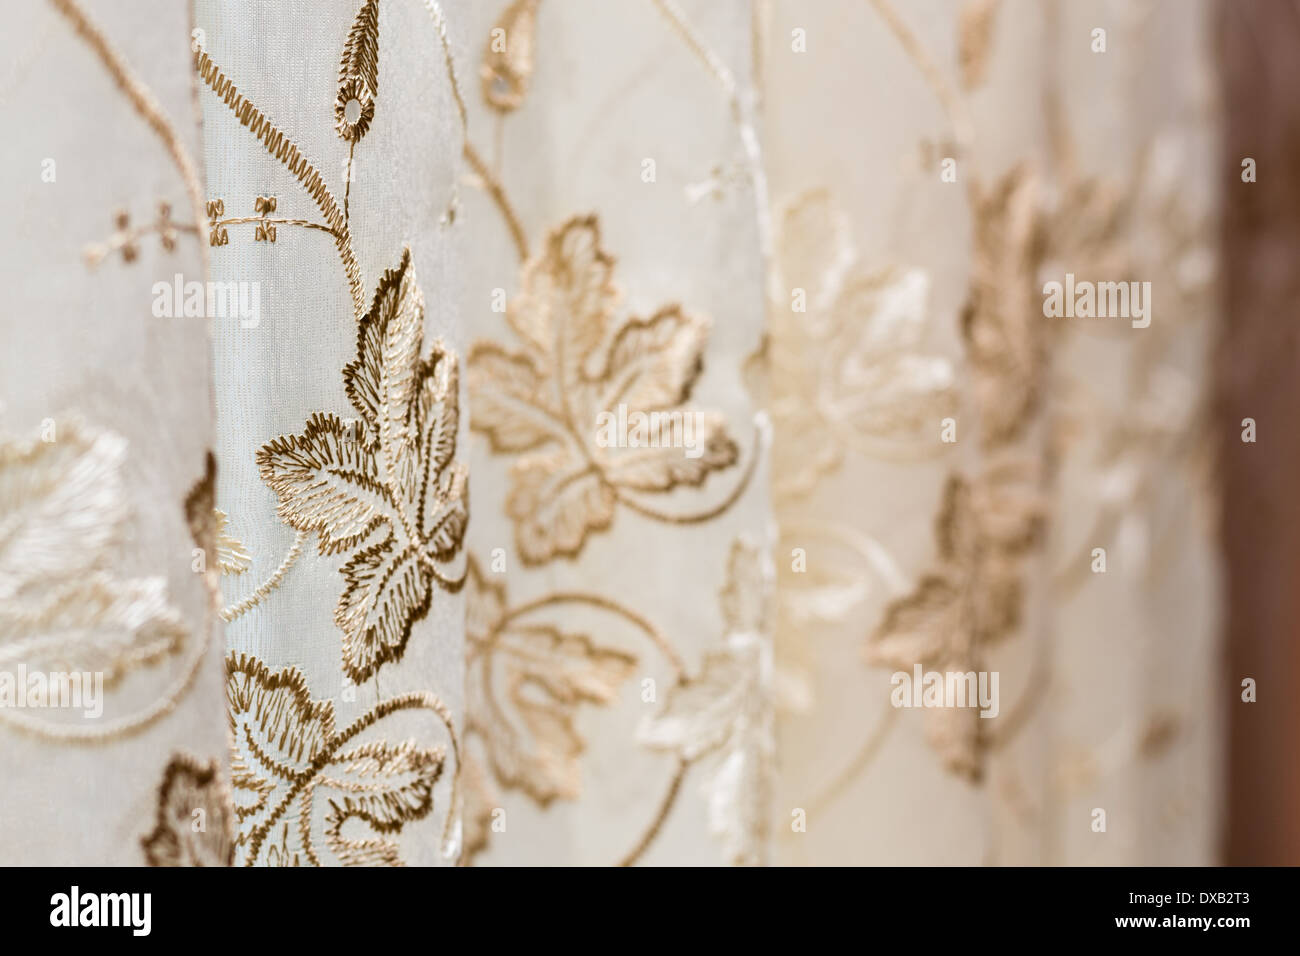 Curtain with flower pattern - Stock Image